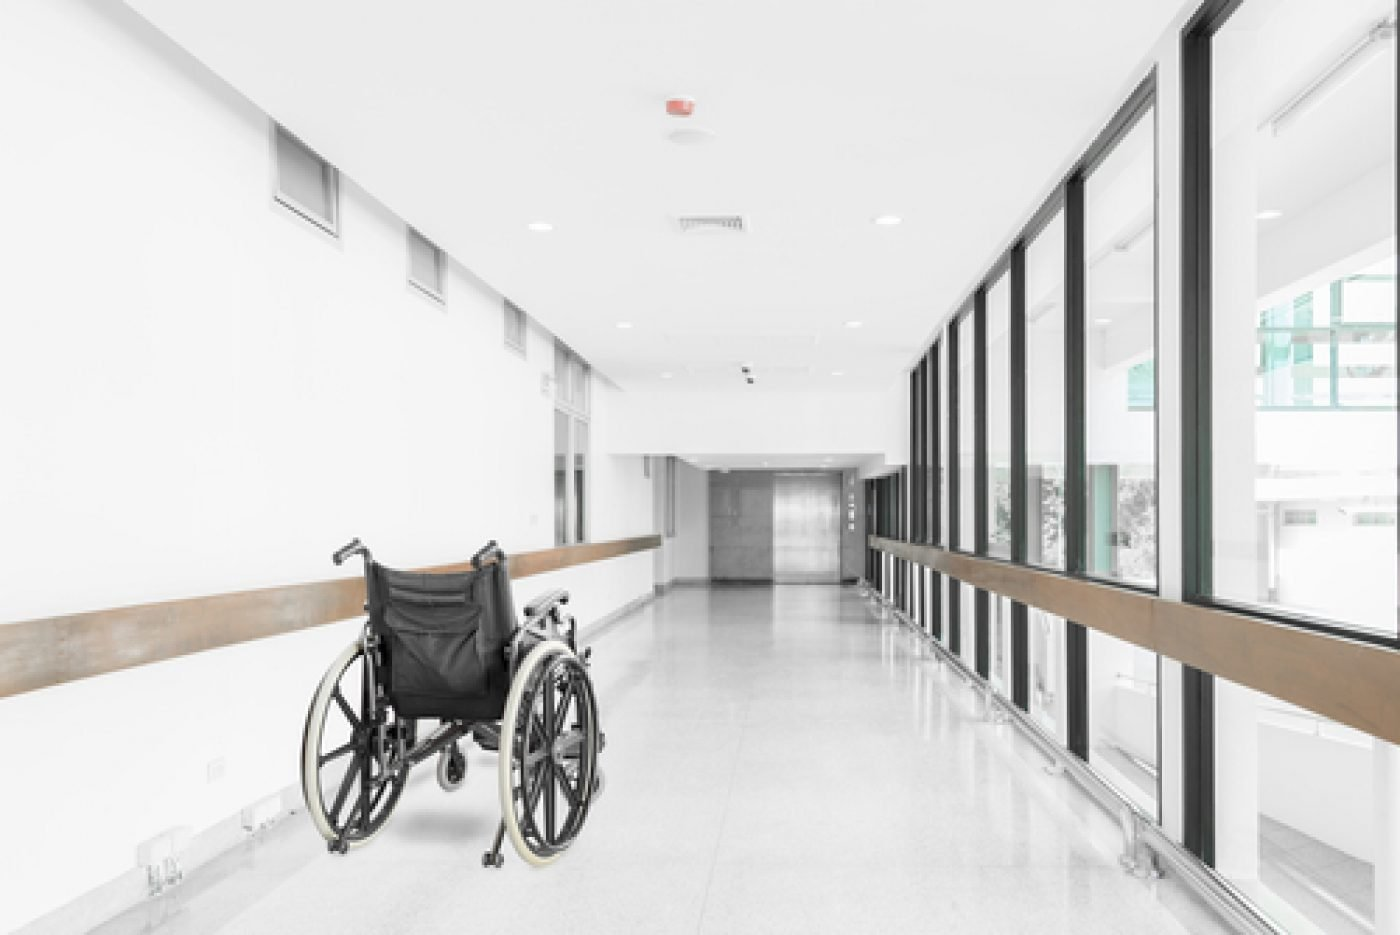 Hospital abuse and neglect